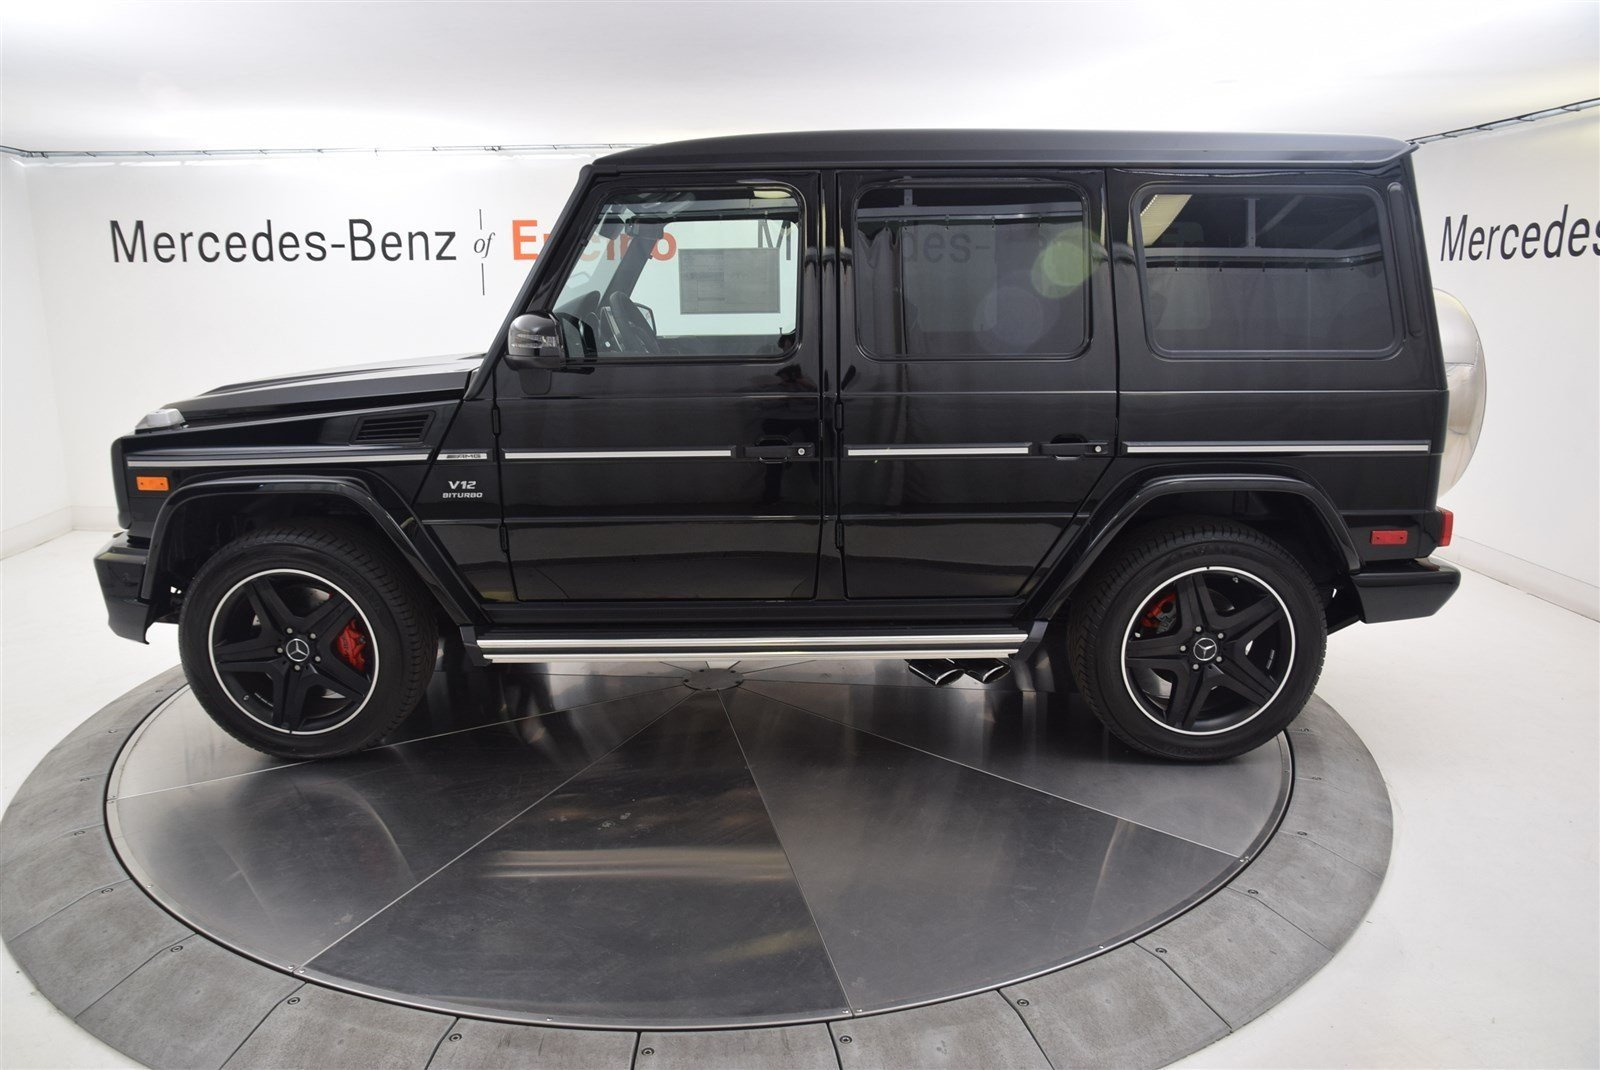 new 2016 mercedes-benz g-class g 65 amg® suv suv in encino #55207